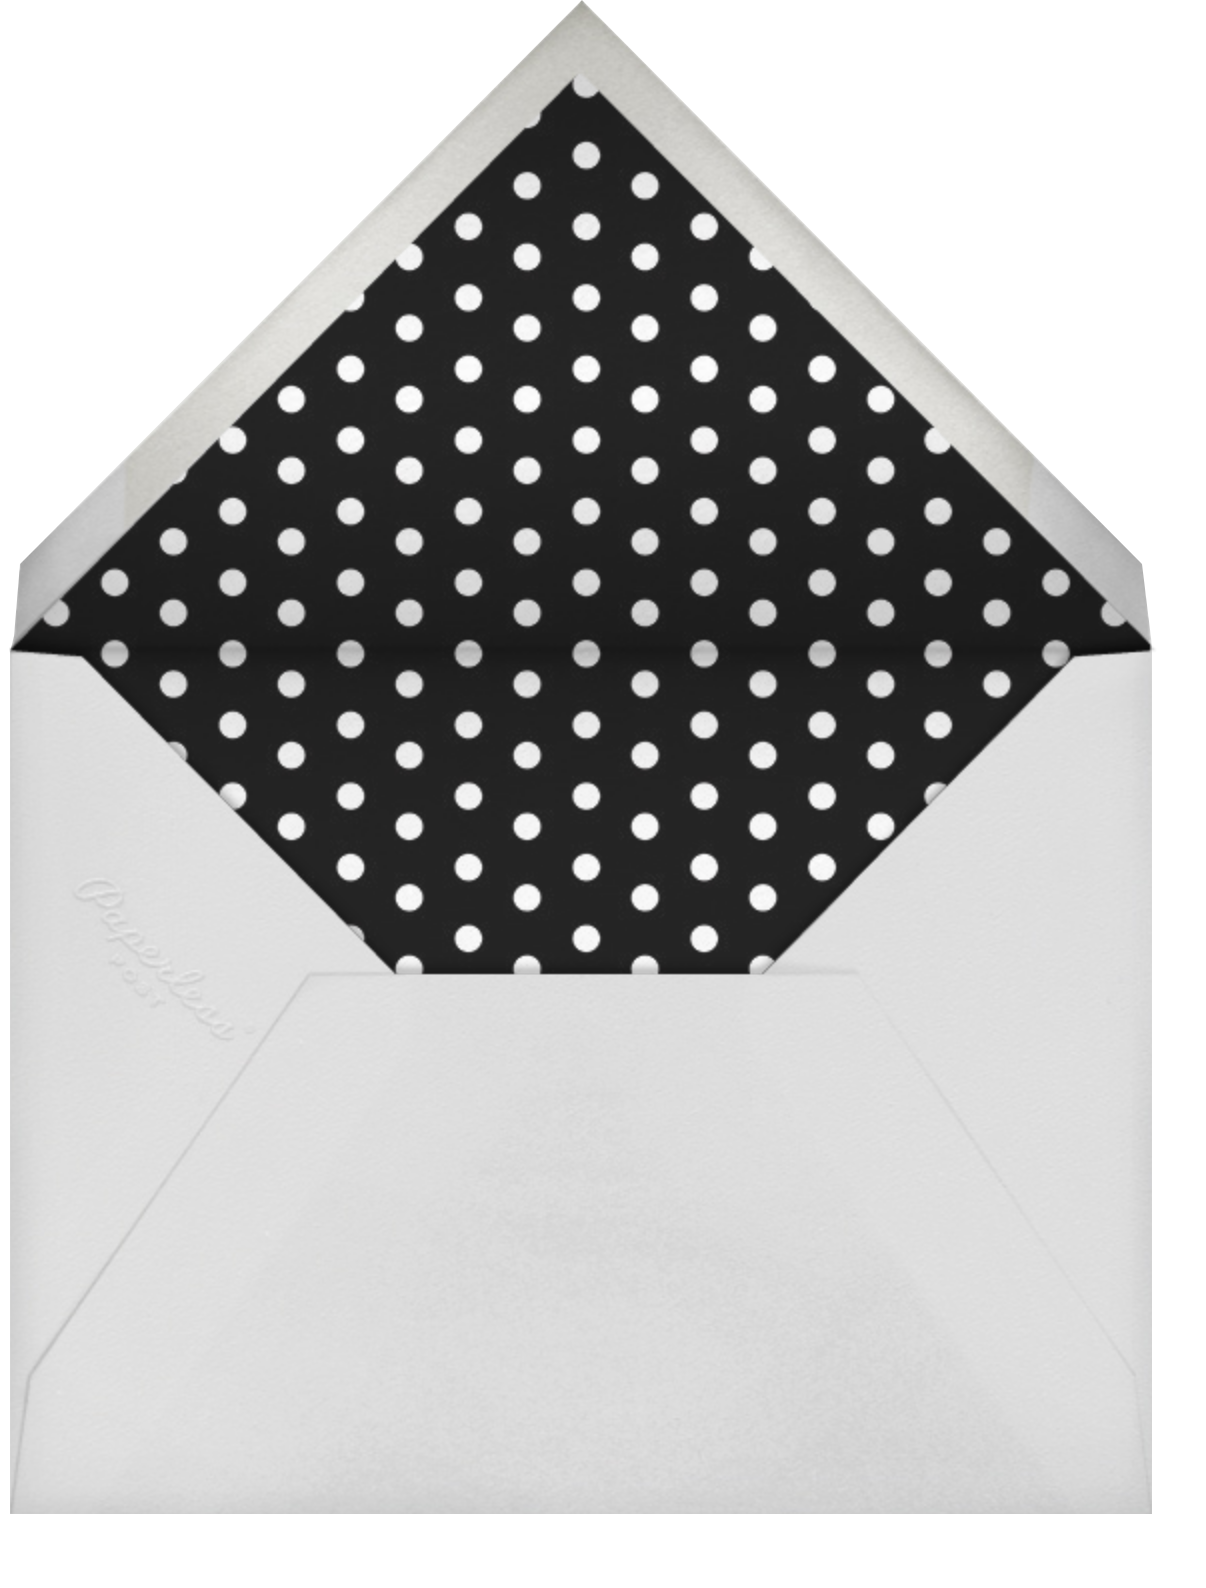 Queen for a Day - Tan - Rifle Paper Co. - Adult birthday - envelope back